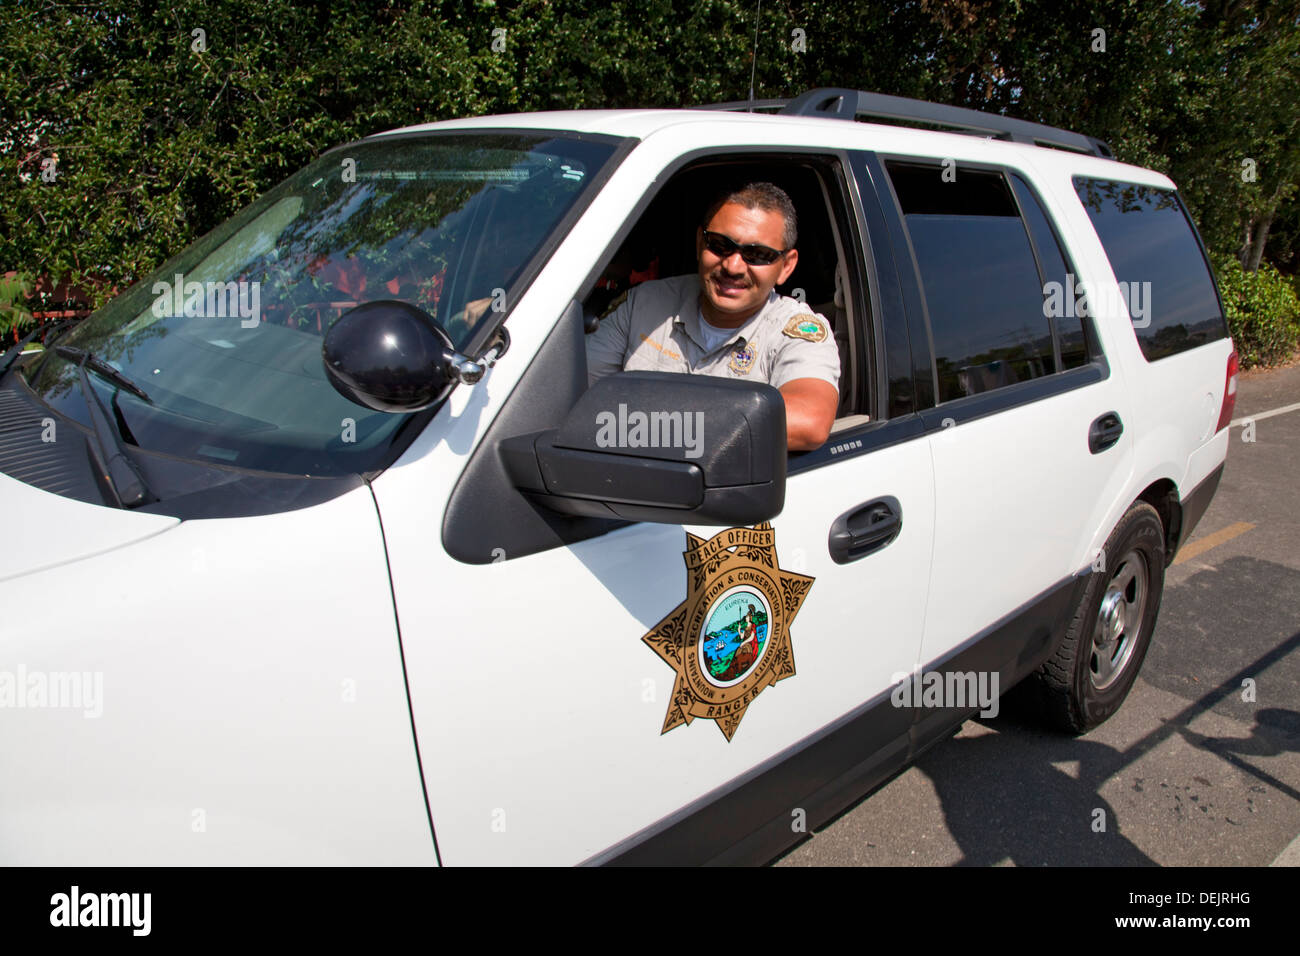 Mountains, Recreation and Conservation Authority (MRCA) Ranger patrolling the Los Angeles River, California, US - Stock Image